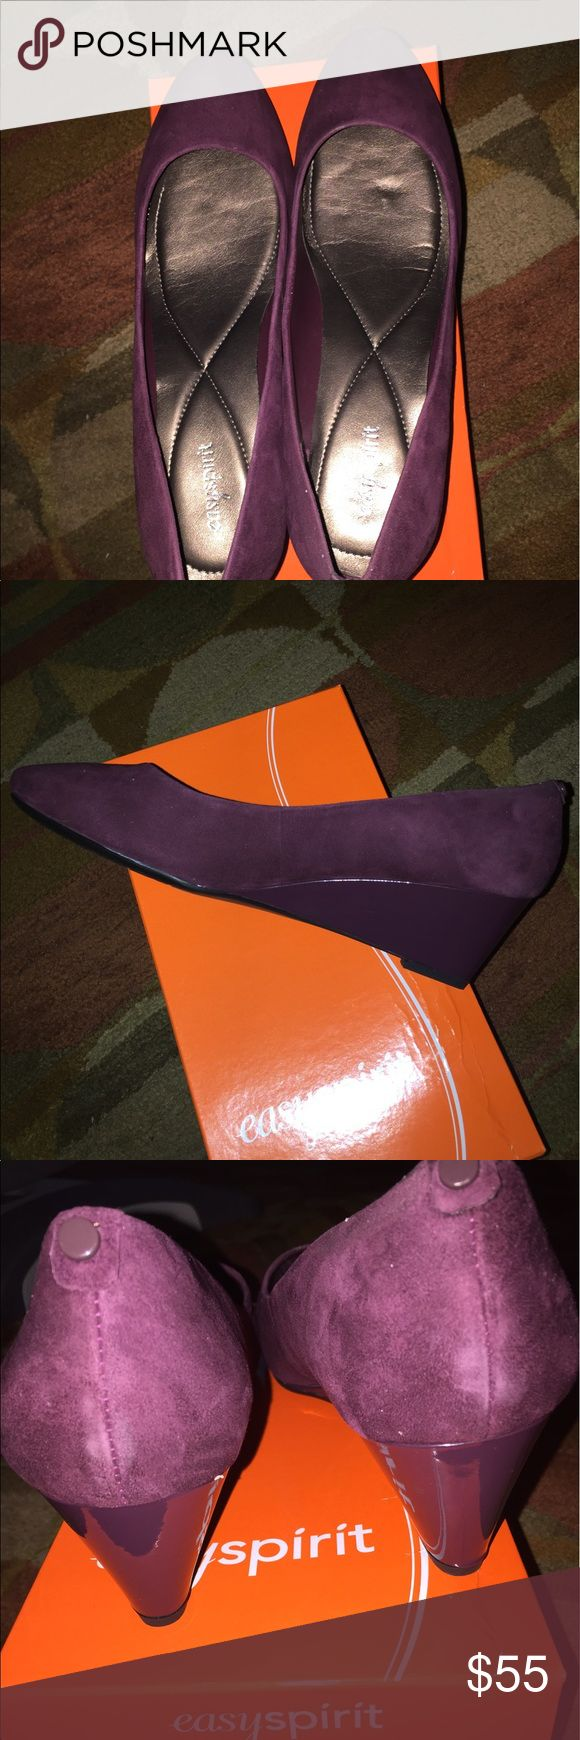 Easy Spirit Purple wedge This is a Brand new and never worn nice and comfy wedge shoe in 11 wide. Easy Spirit Shoes Wedges